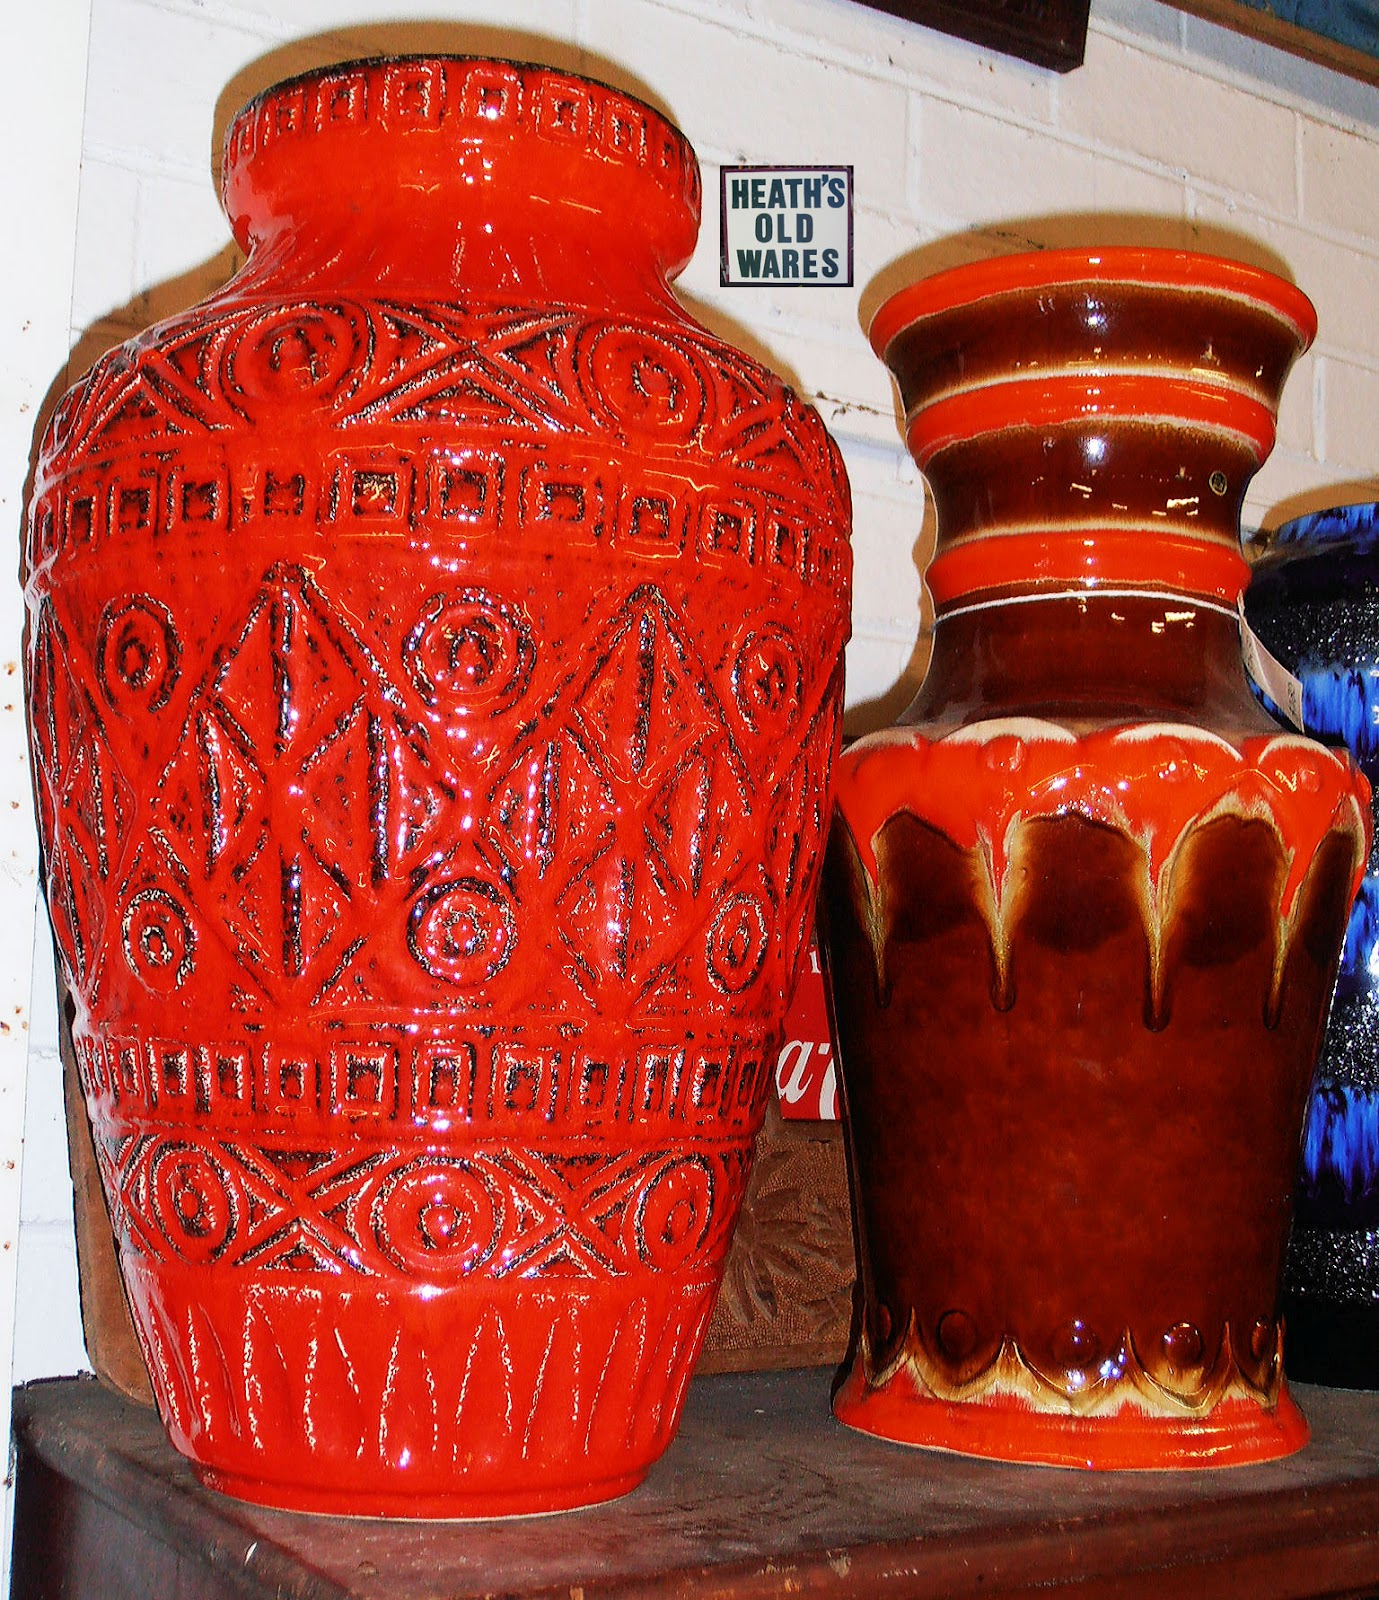 Heaths Old Wares, Collectables, Industrial Antiques: Super ...